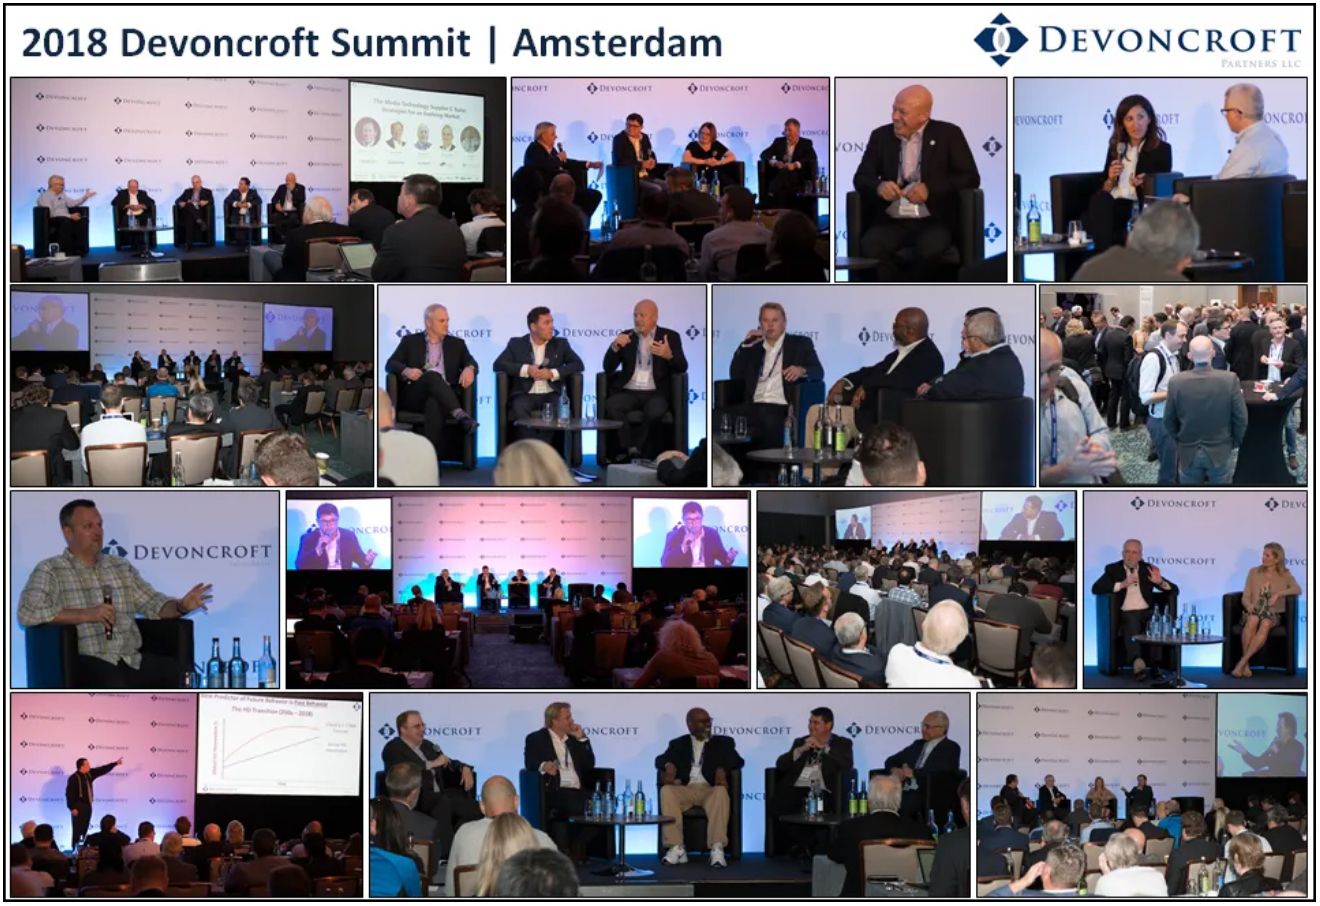 2018 Devoncroft Summit Amsterdam